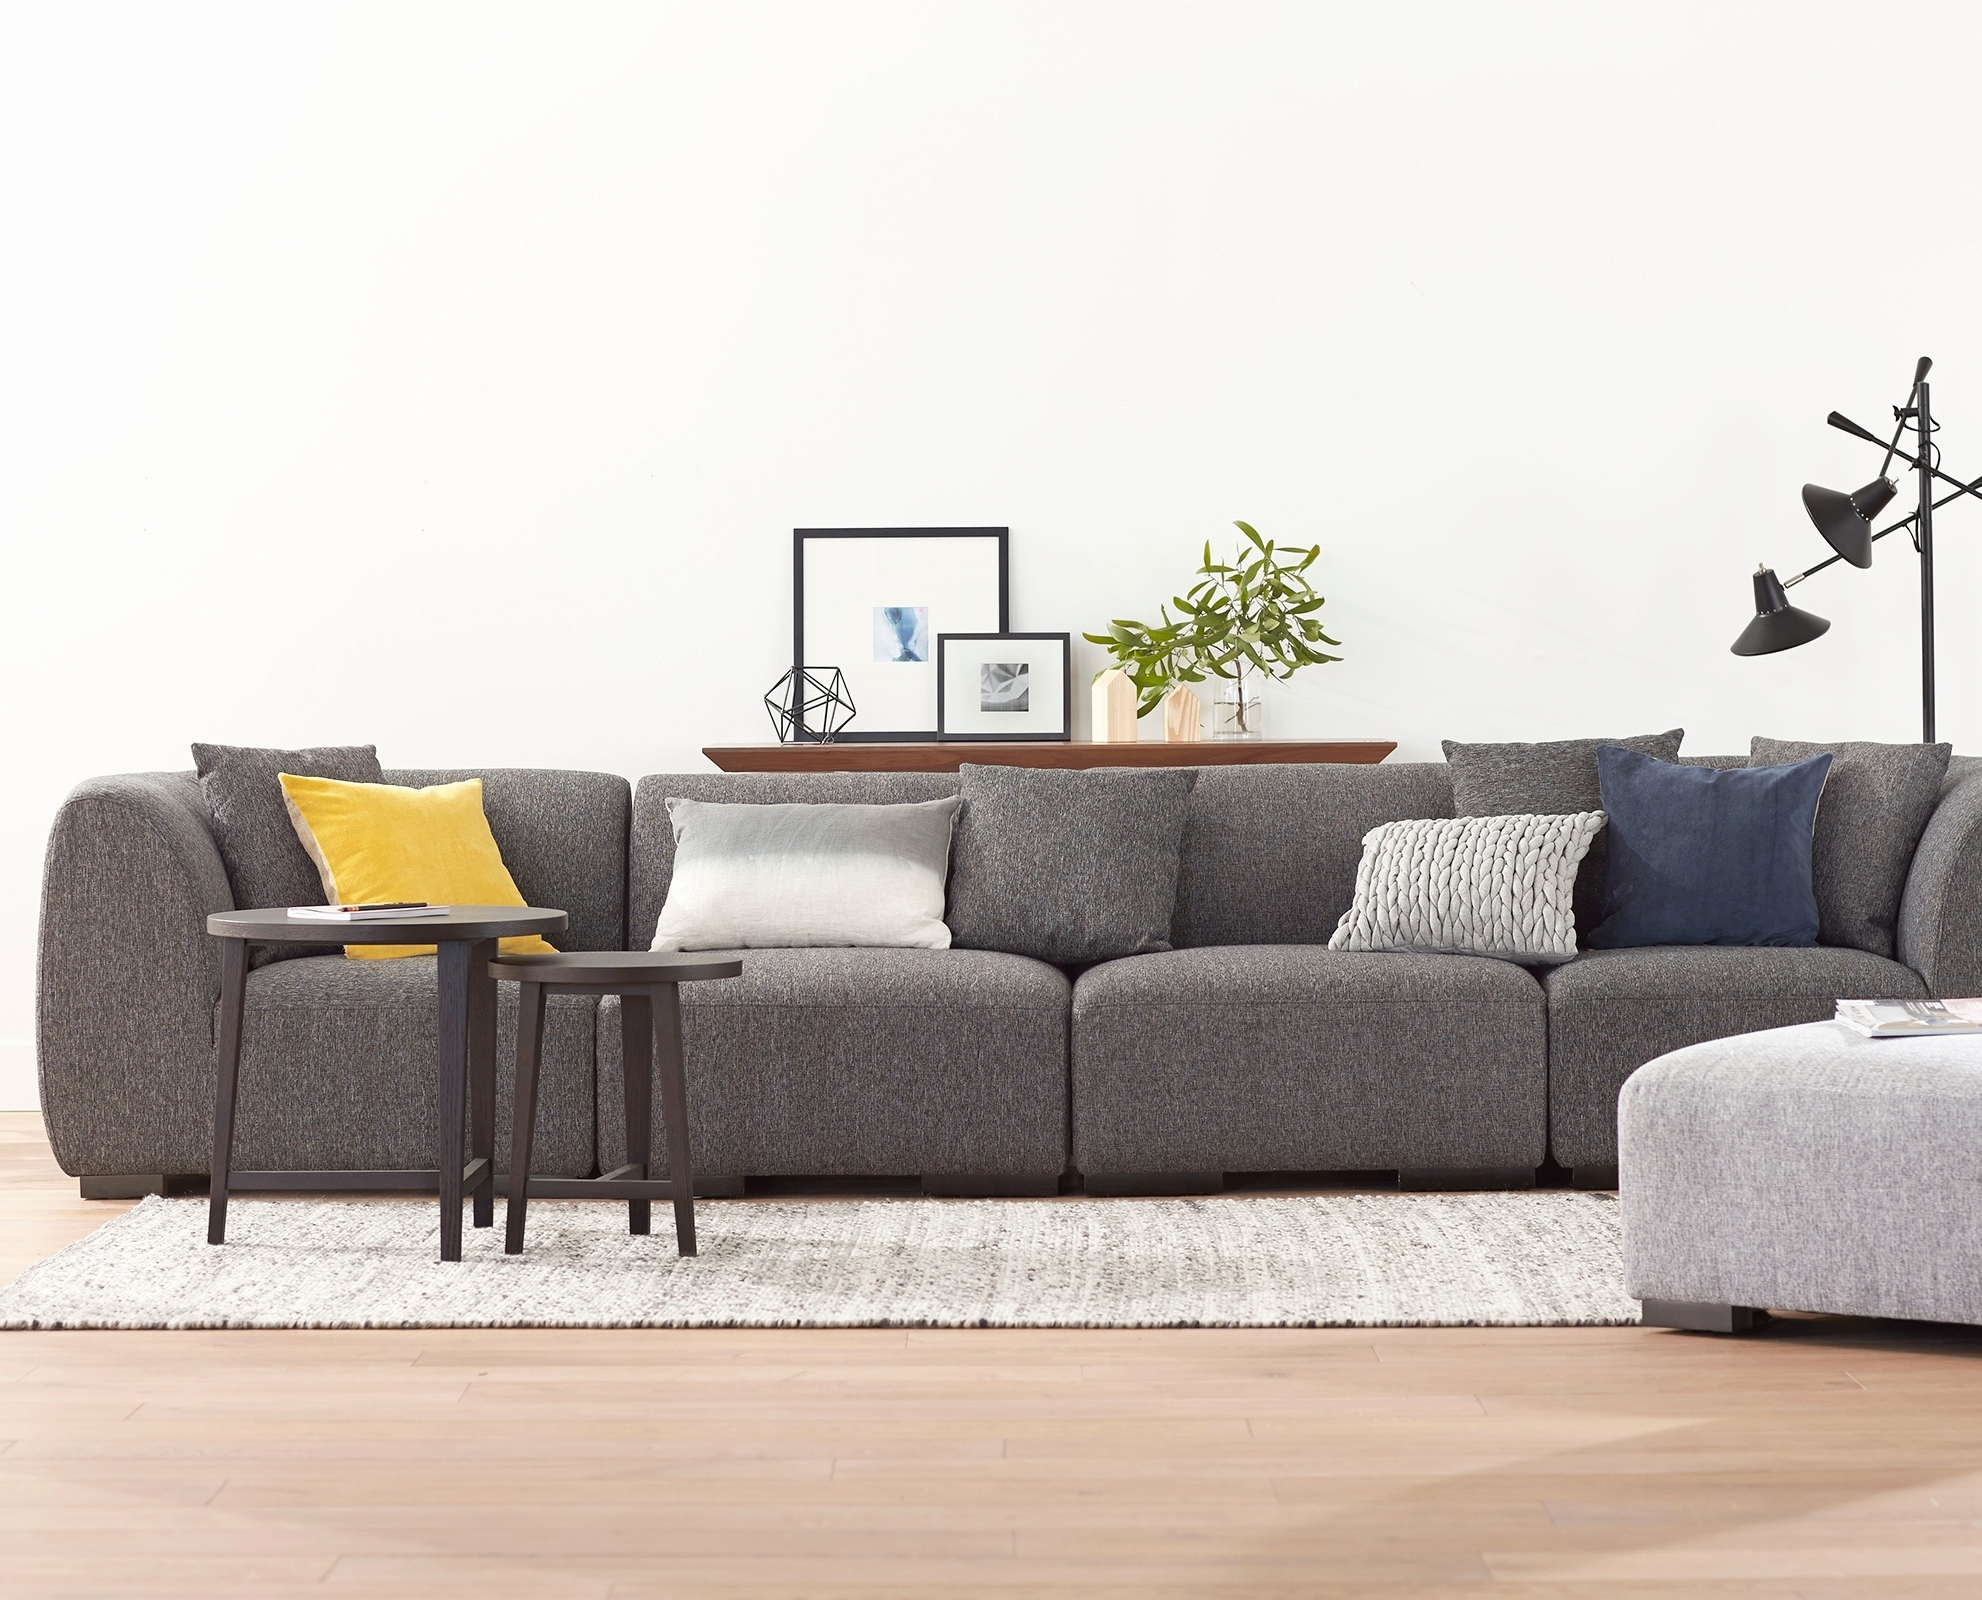 Fresh Sectional Sofa Beds For Small Spaces 2018 – Couches And For Widely Used Canada Sectional Sofas For Small Spaces (View 8 of 15)